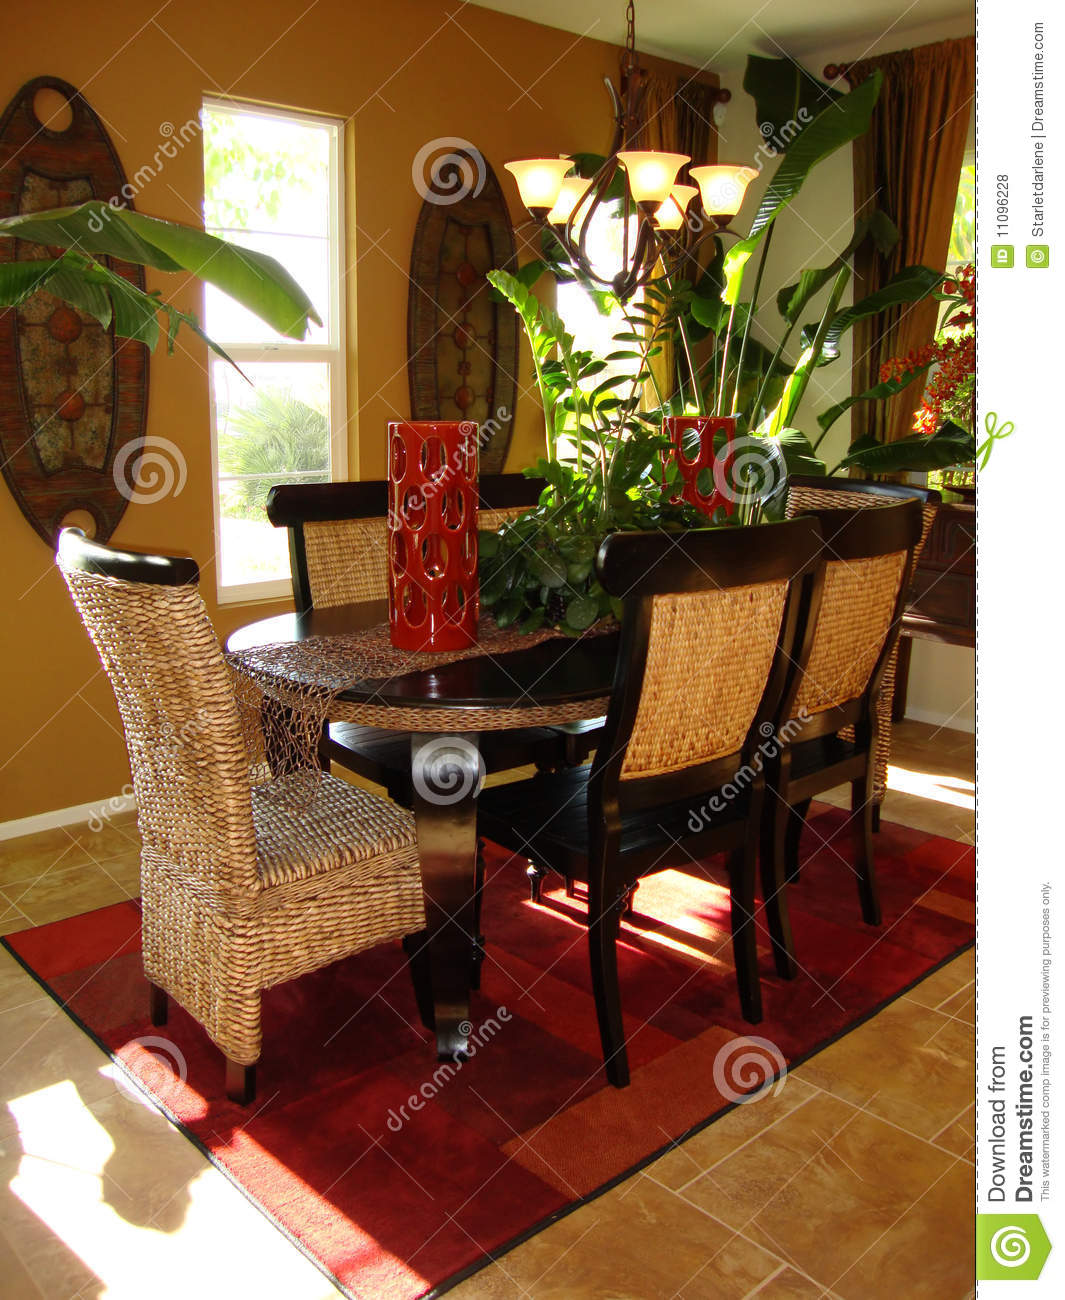 Dining room tropical stock photo image of chairs window for Tropical dining room